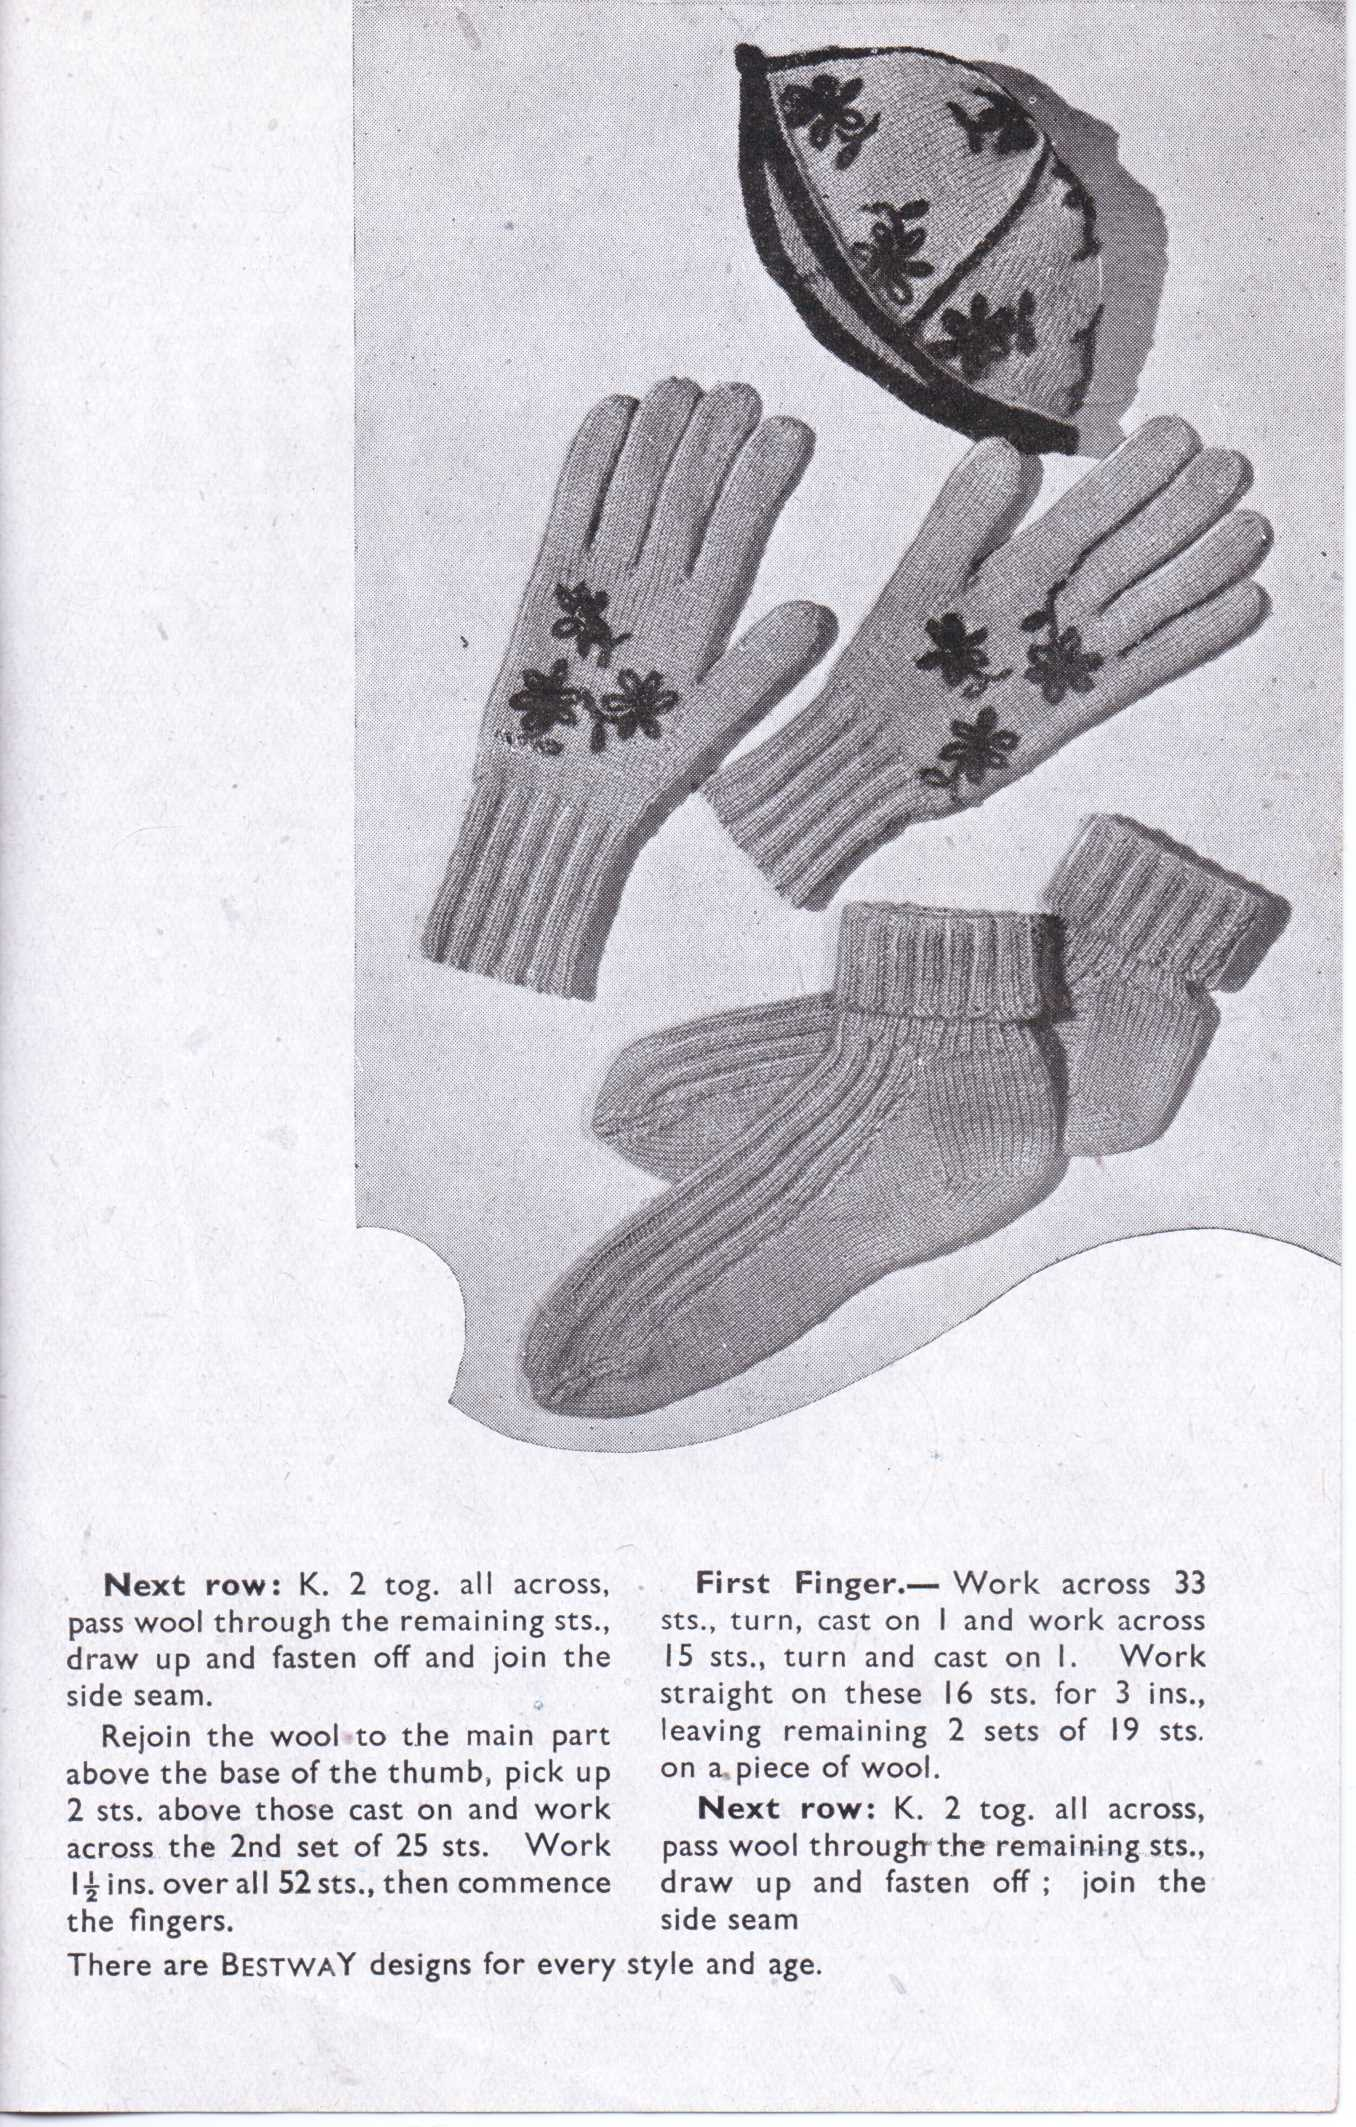 Free Vintage Knitting Patterns 1940s : Free Vintage Knitting Pattern: Bestway 1056 from 1940s Embroidered Ladies Glo...